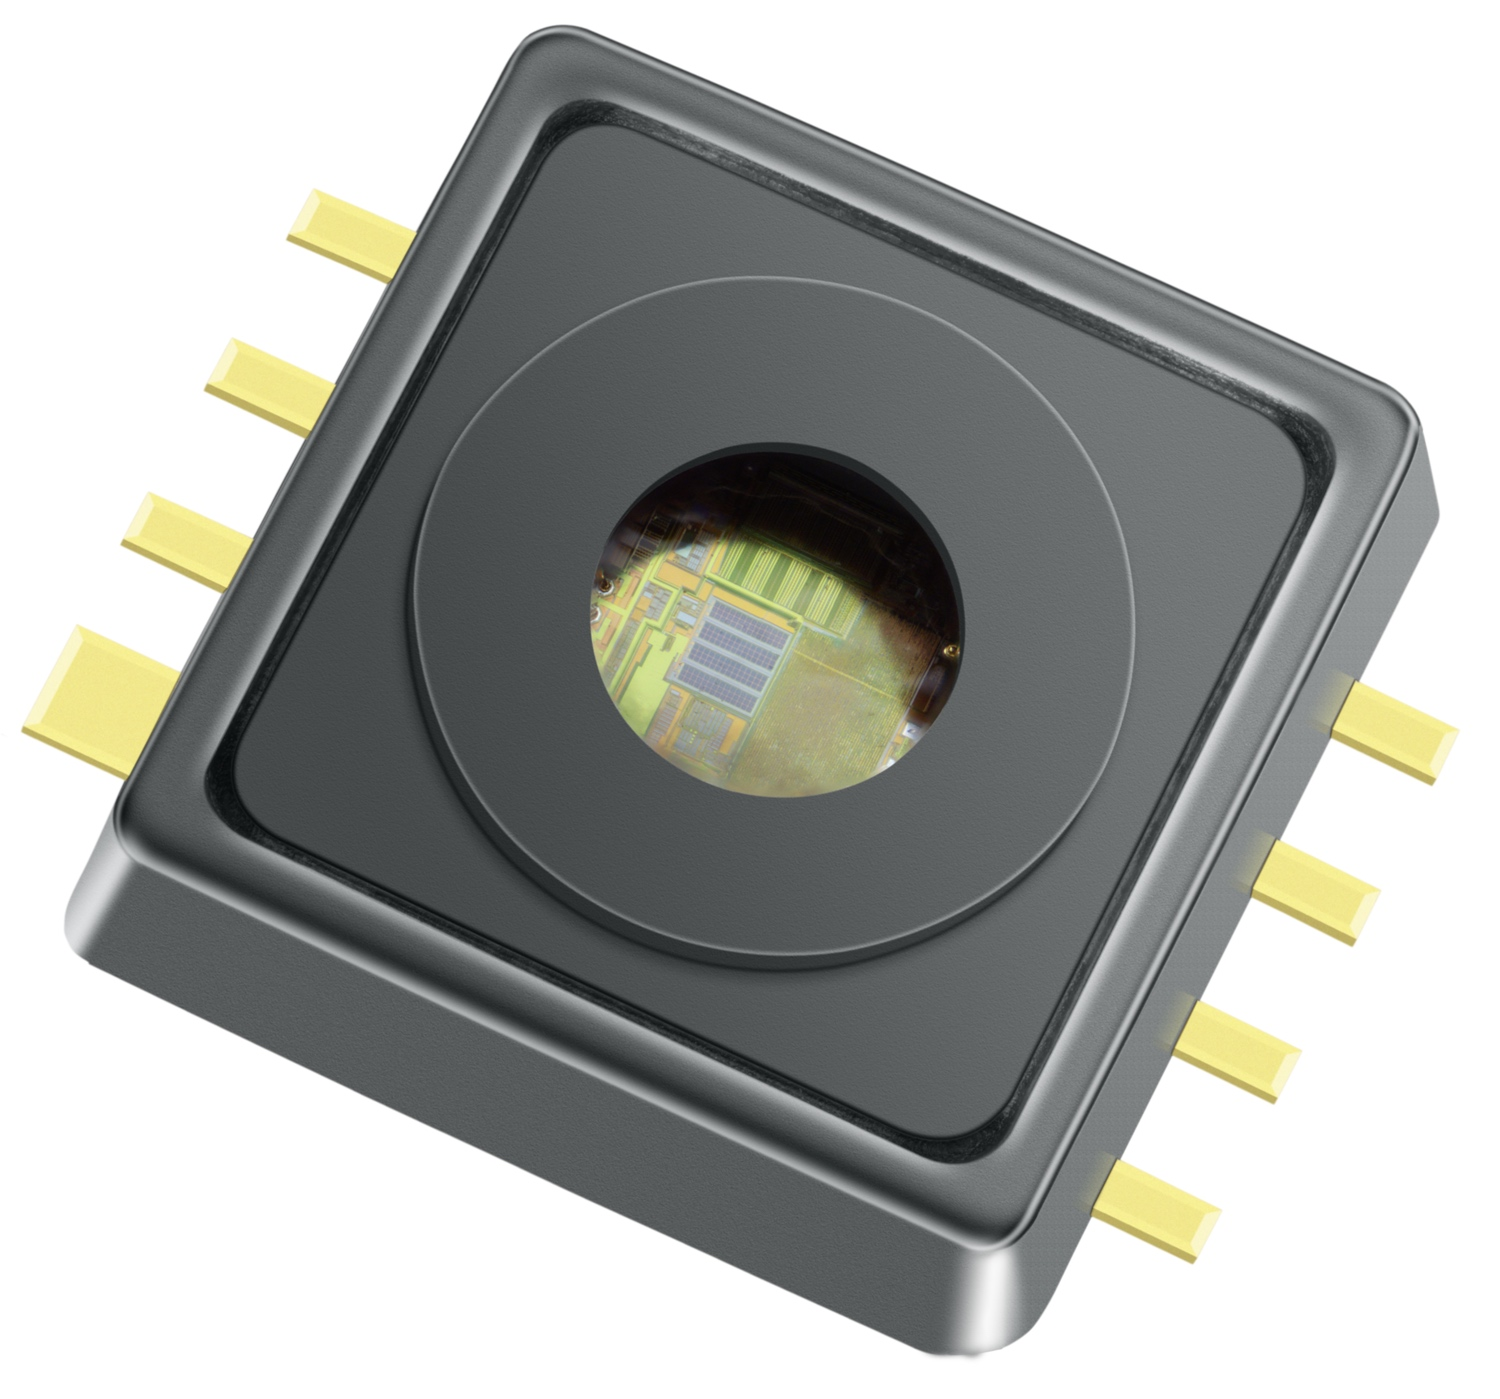 New XENSIV KP276 absolute pressure sensor series covers a range of 10 kPa to 400 kPa